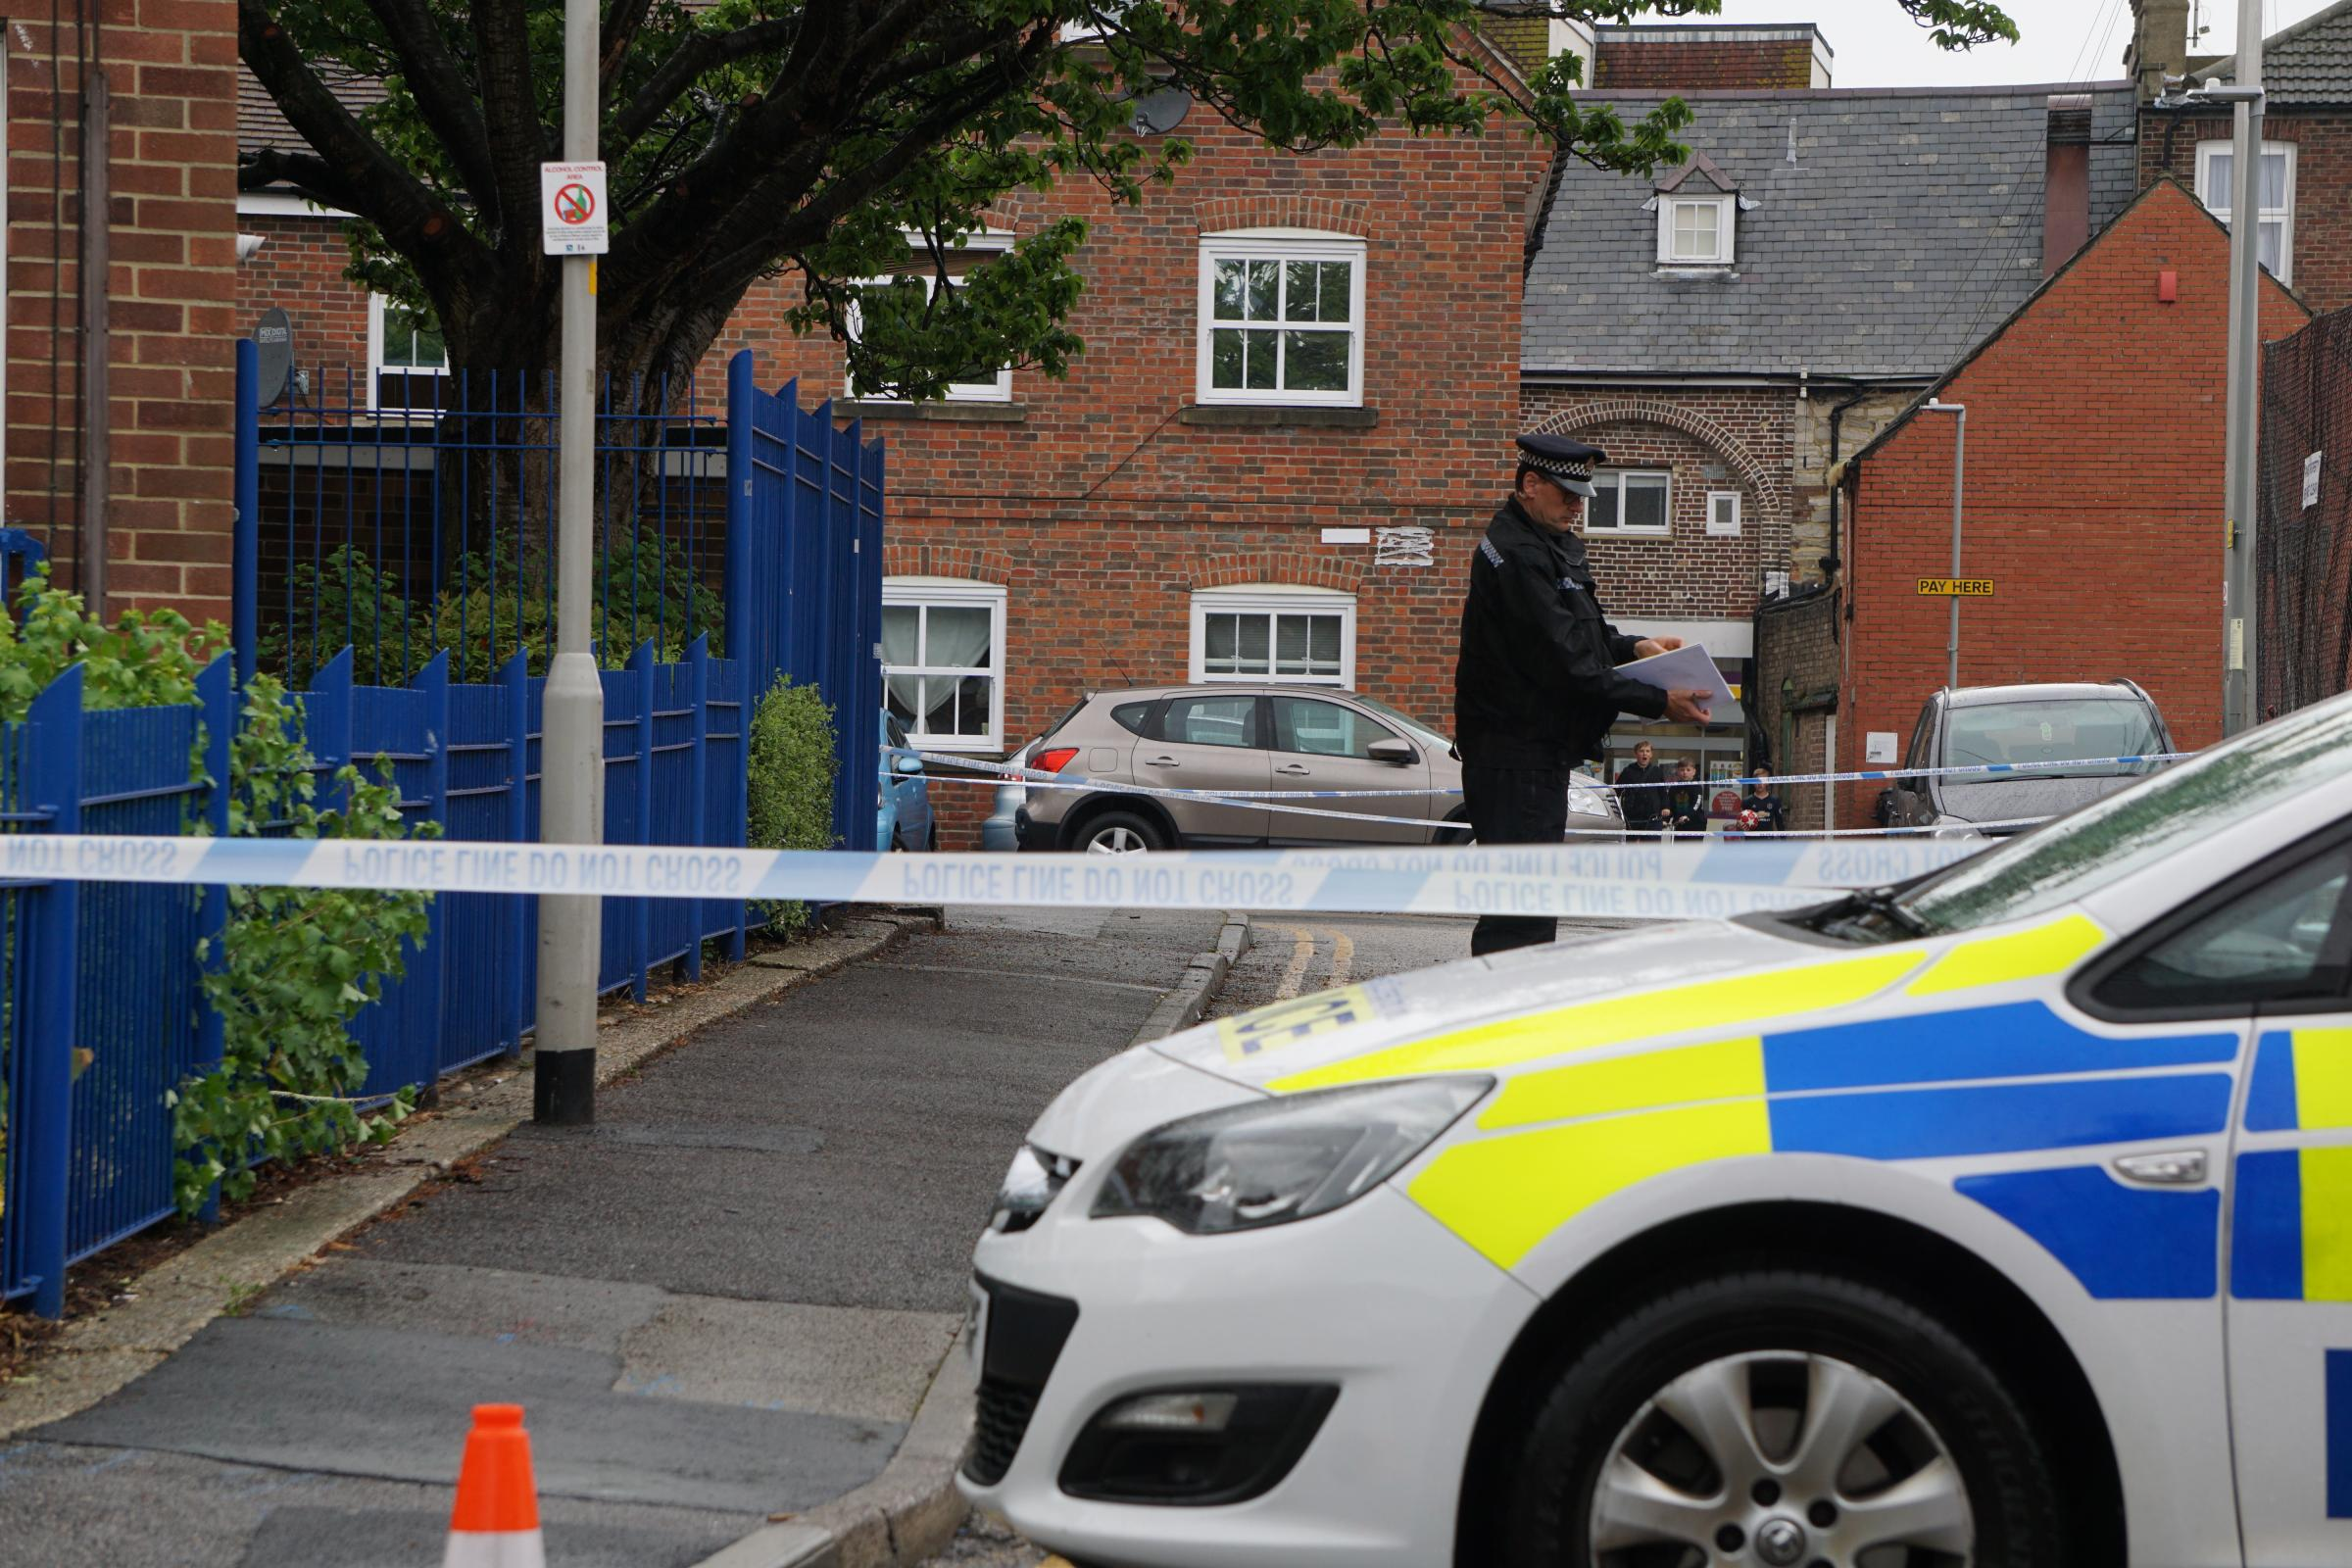 Man in hospital after Poole town centre stabbing